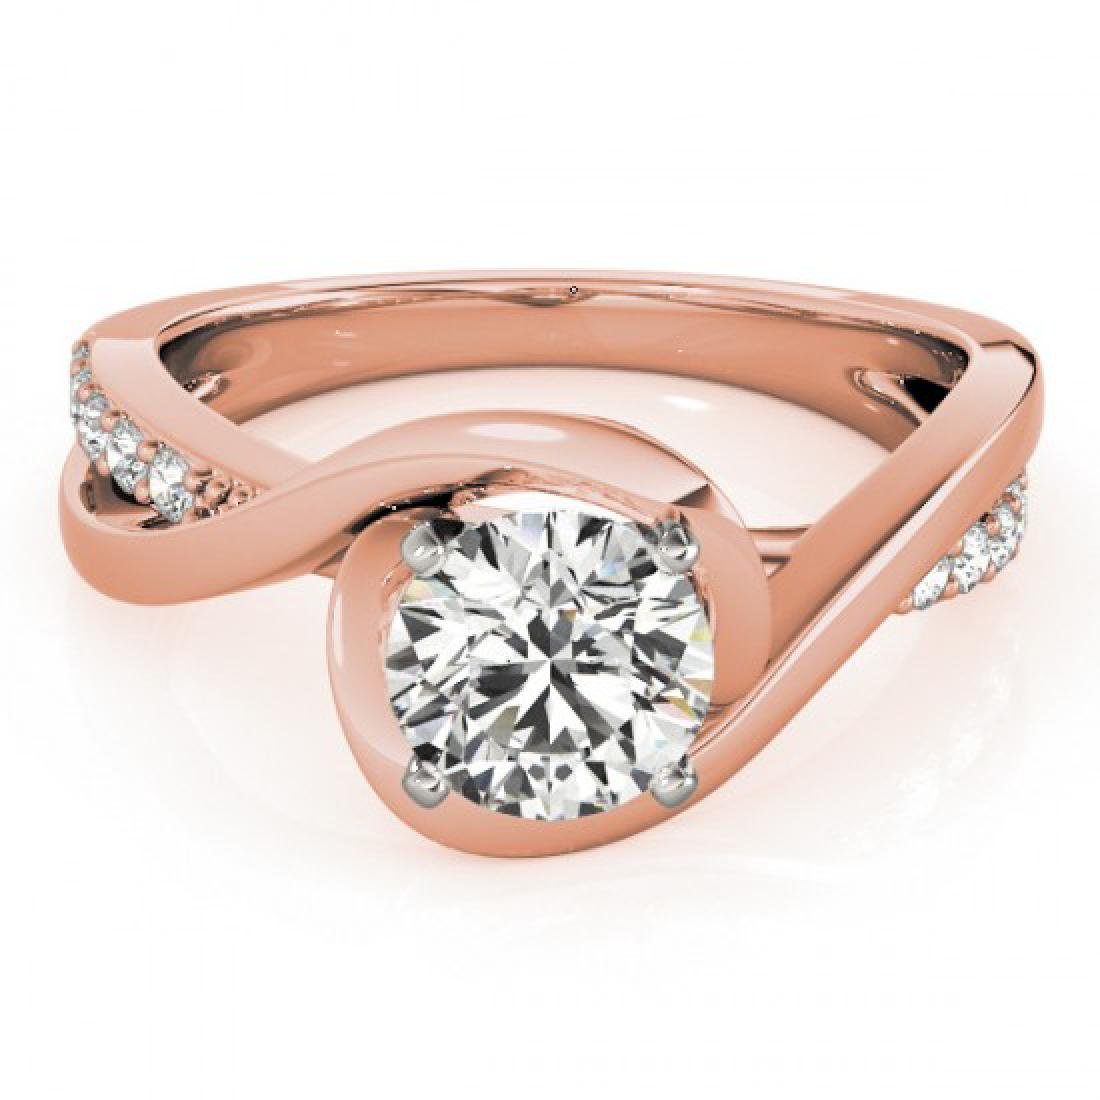 1.15 CTW Certified VS/SI Diamond Solitaire Ring 14K